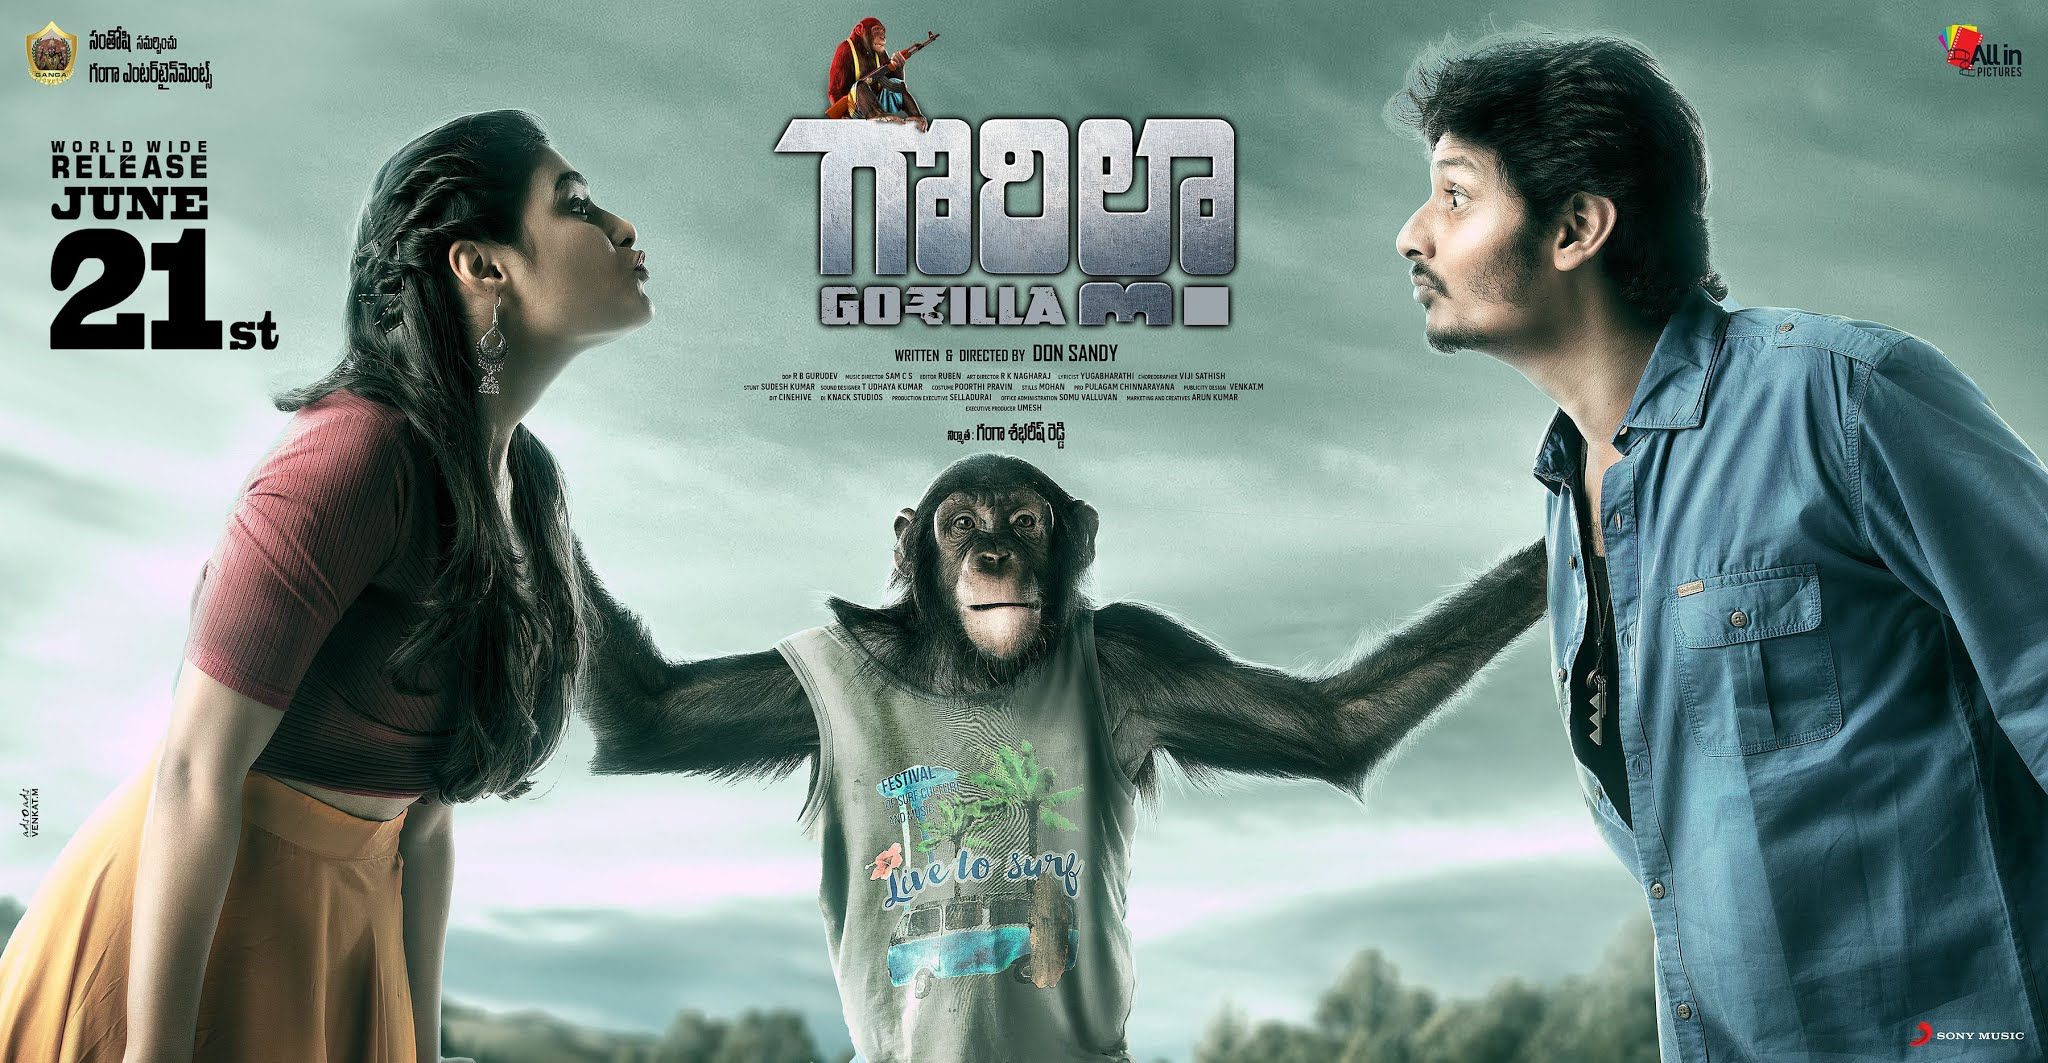 Shalini Pandey Jiiva 'Gorilla' movie releasing on June 21st